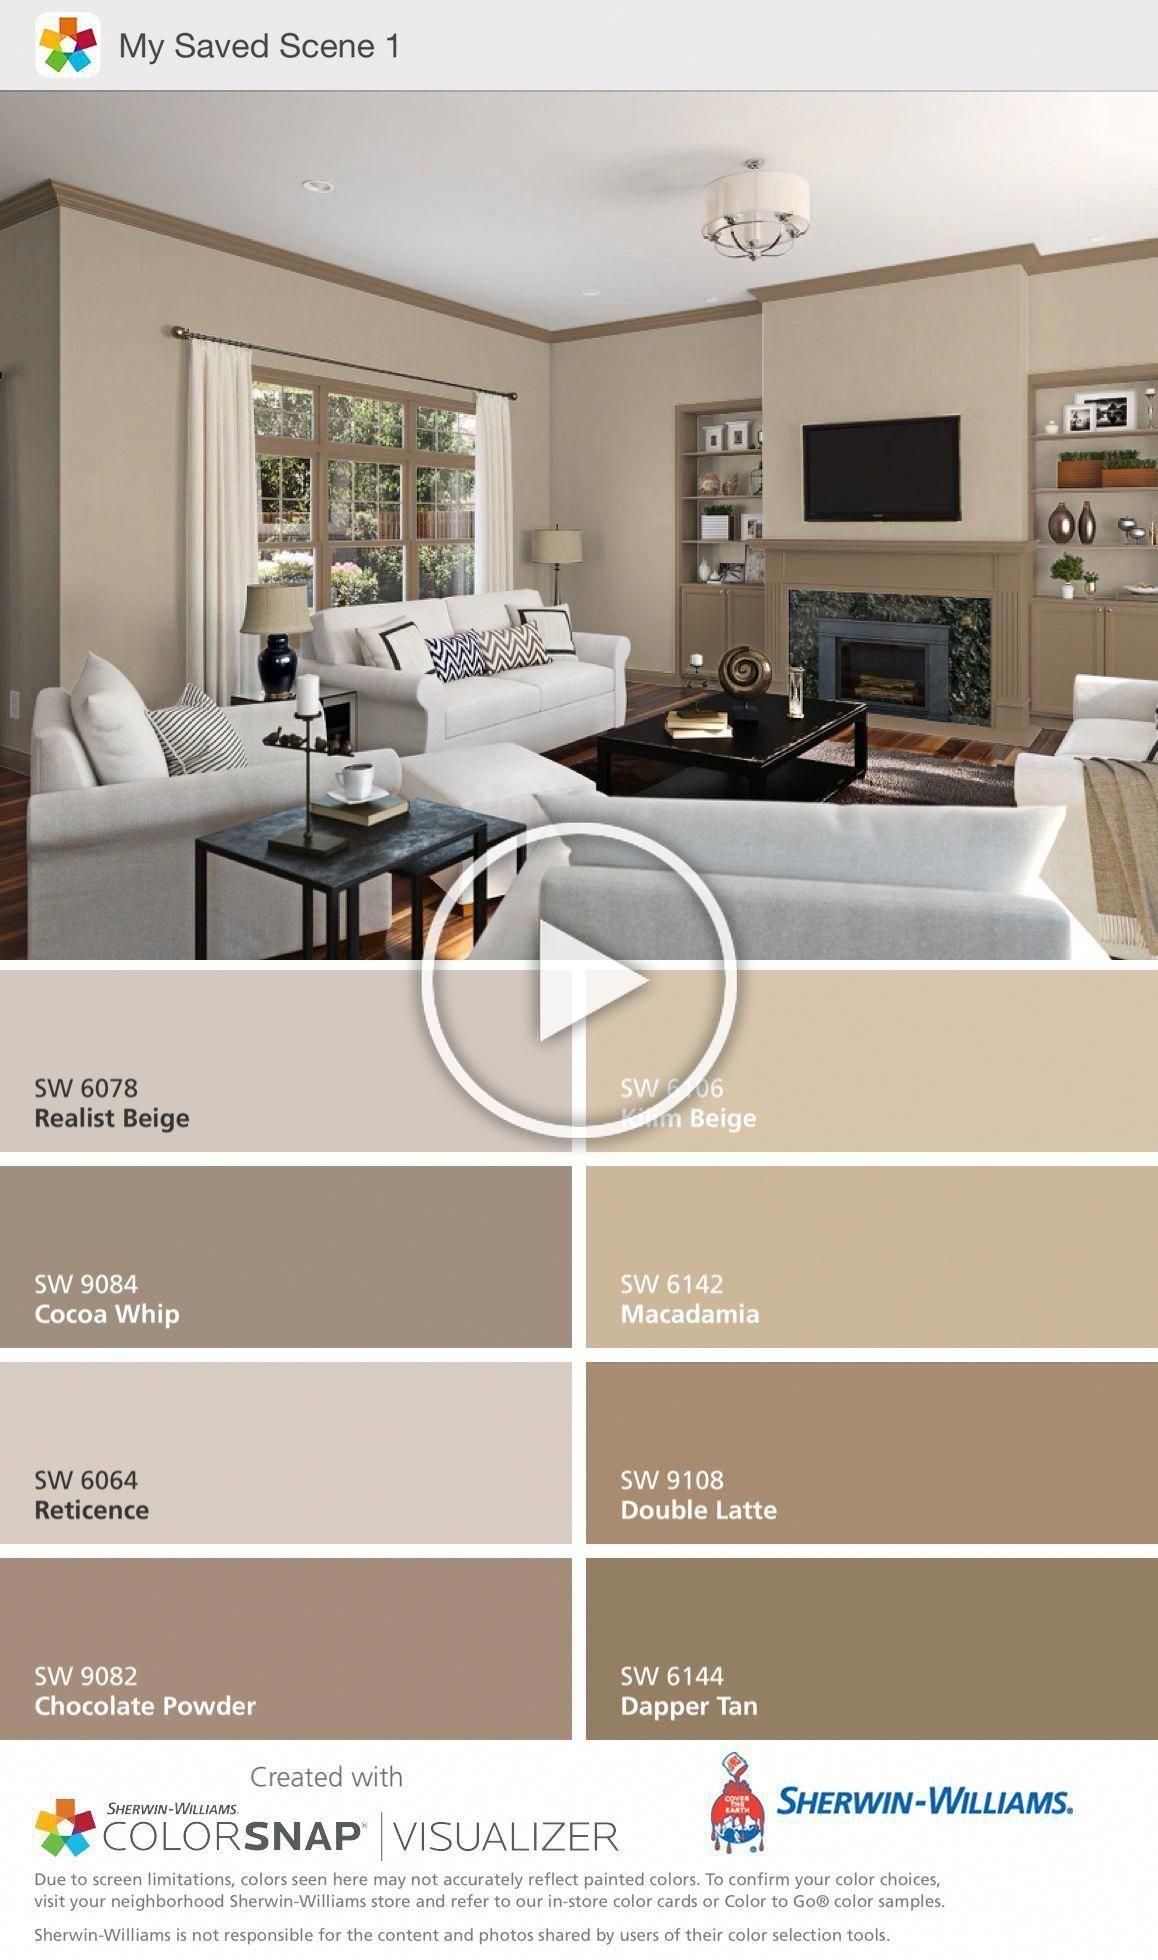 Home Decoration Ideas For Wedding Homedecorationmagazine Paint Colors For Living Room Beige Living Room Paint Interior House Colors View home living room color ideas